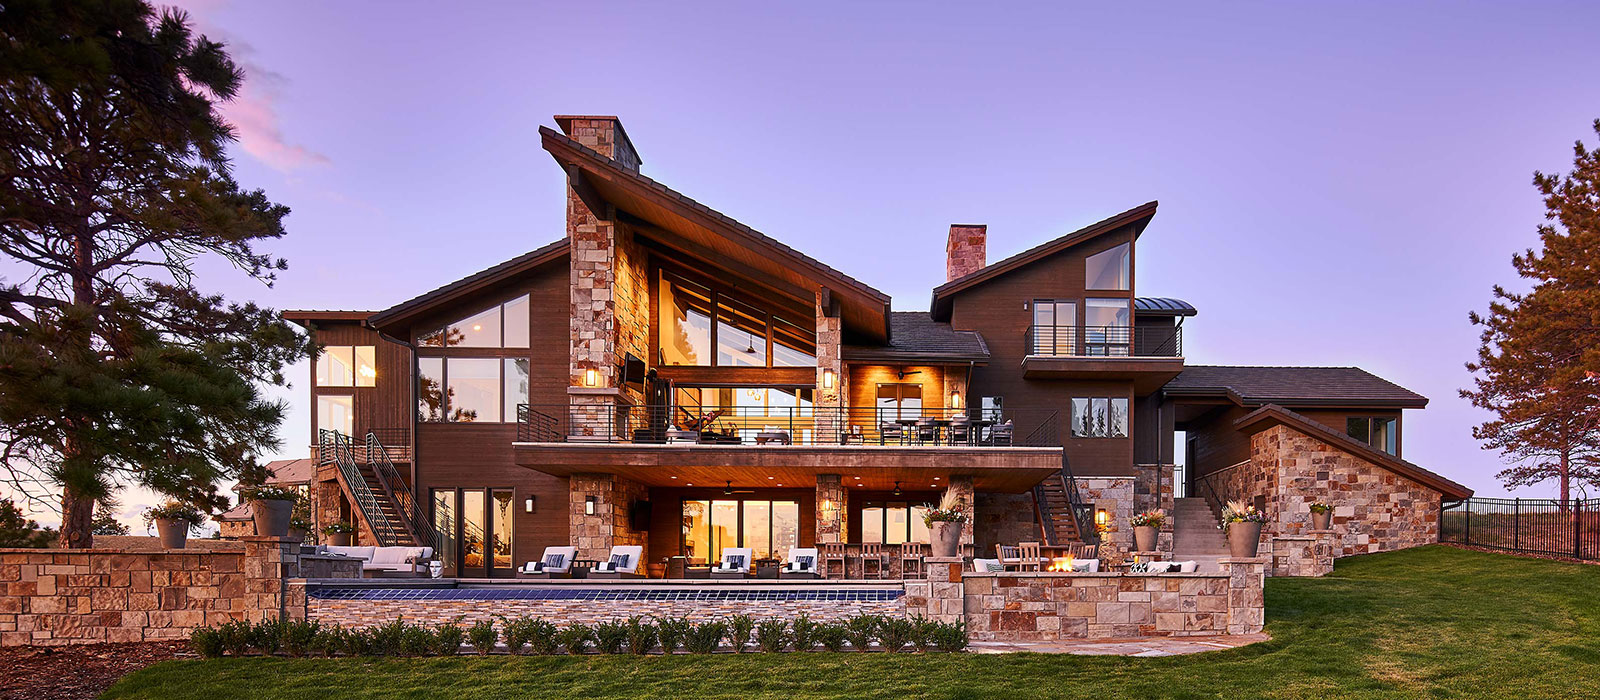 Rear elevation of modern rustic custom home with slanting roof lines in Colorado Golf Club